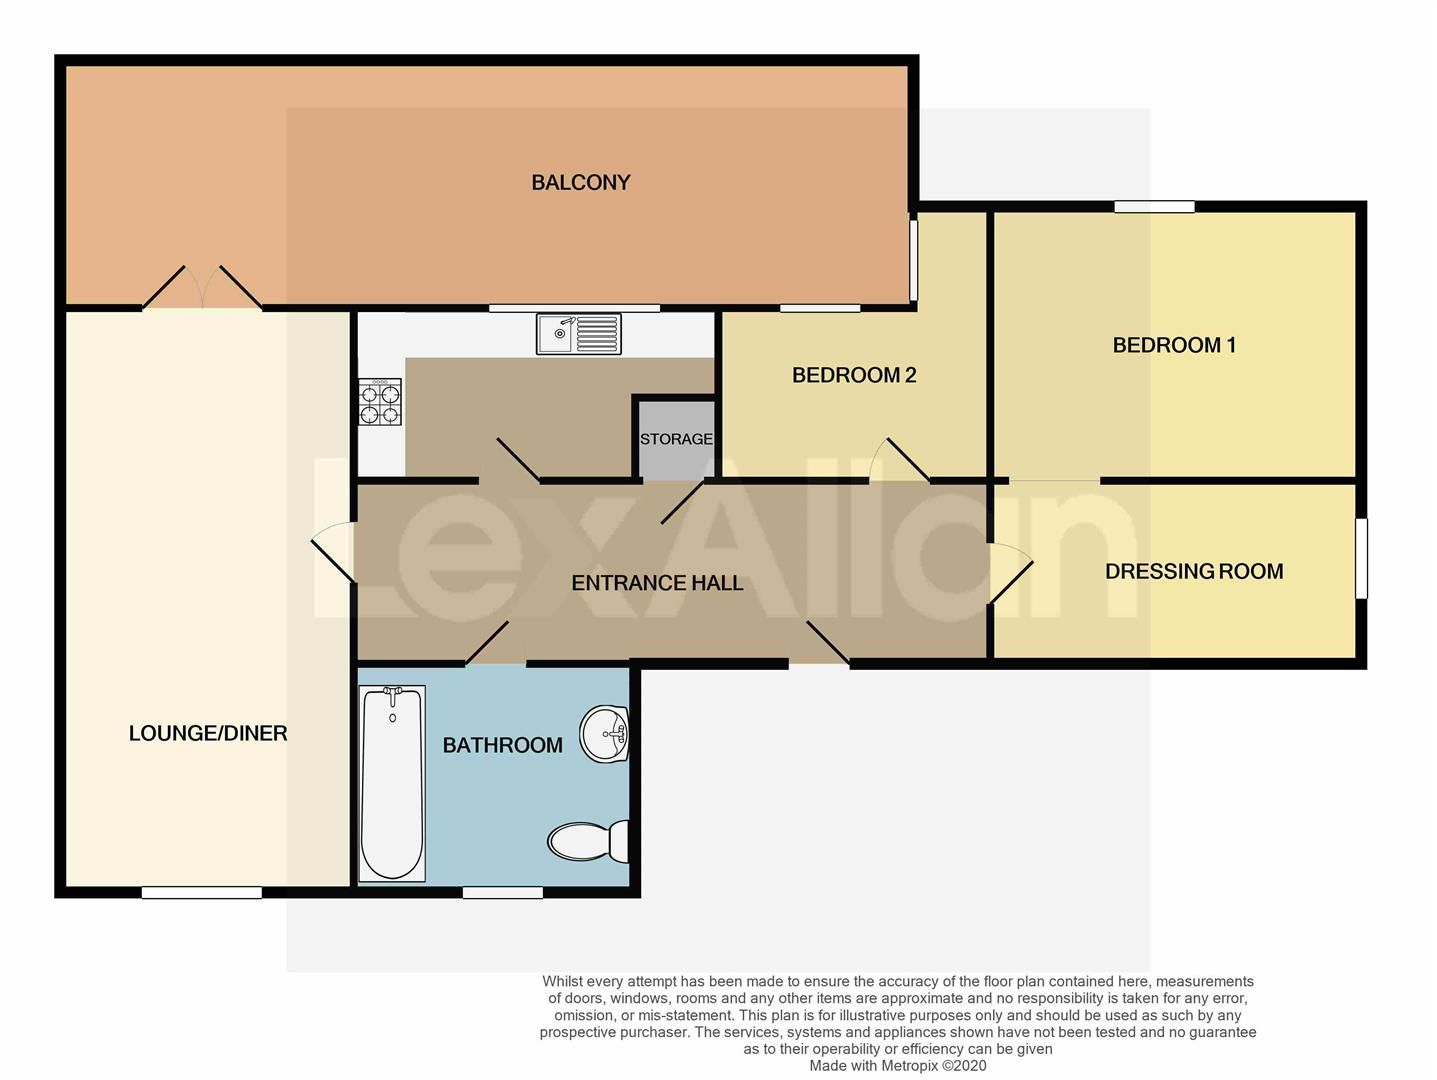 2 bed apartment for sale - Property Floorplan